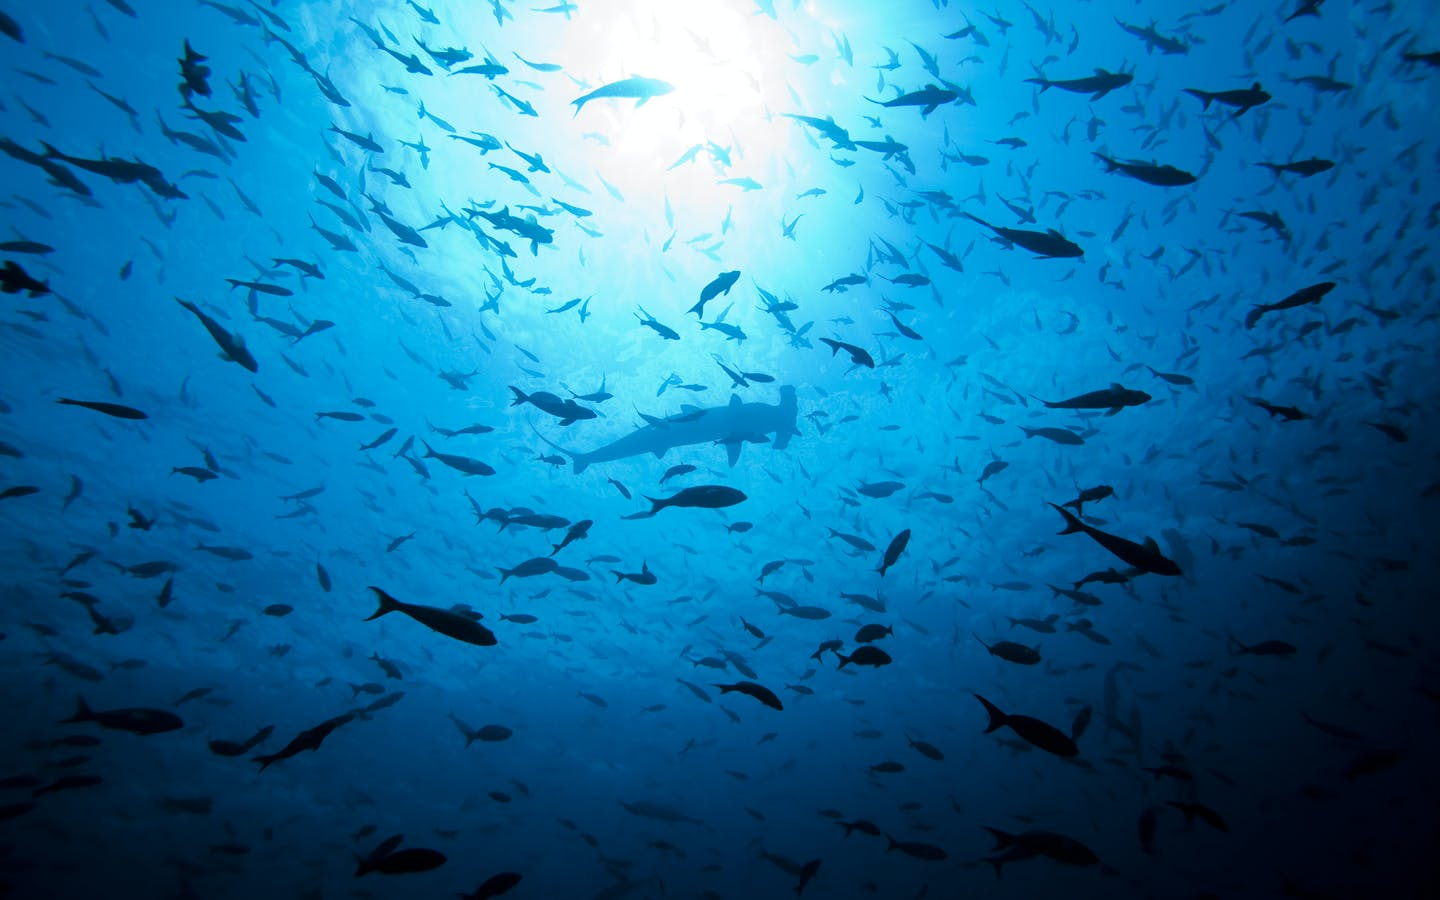 Illegal shark fishing along with increasing demand for shark fin soup has led to the removal of 95% of these beautiful Scalloped Hammerheads.